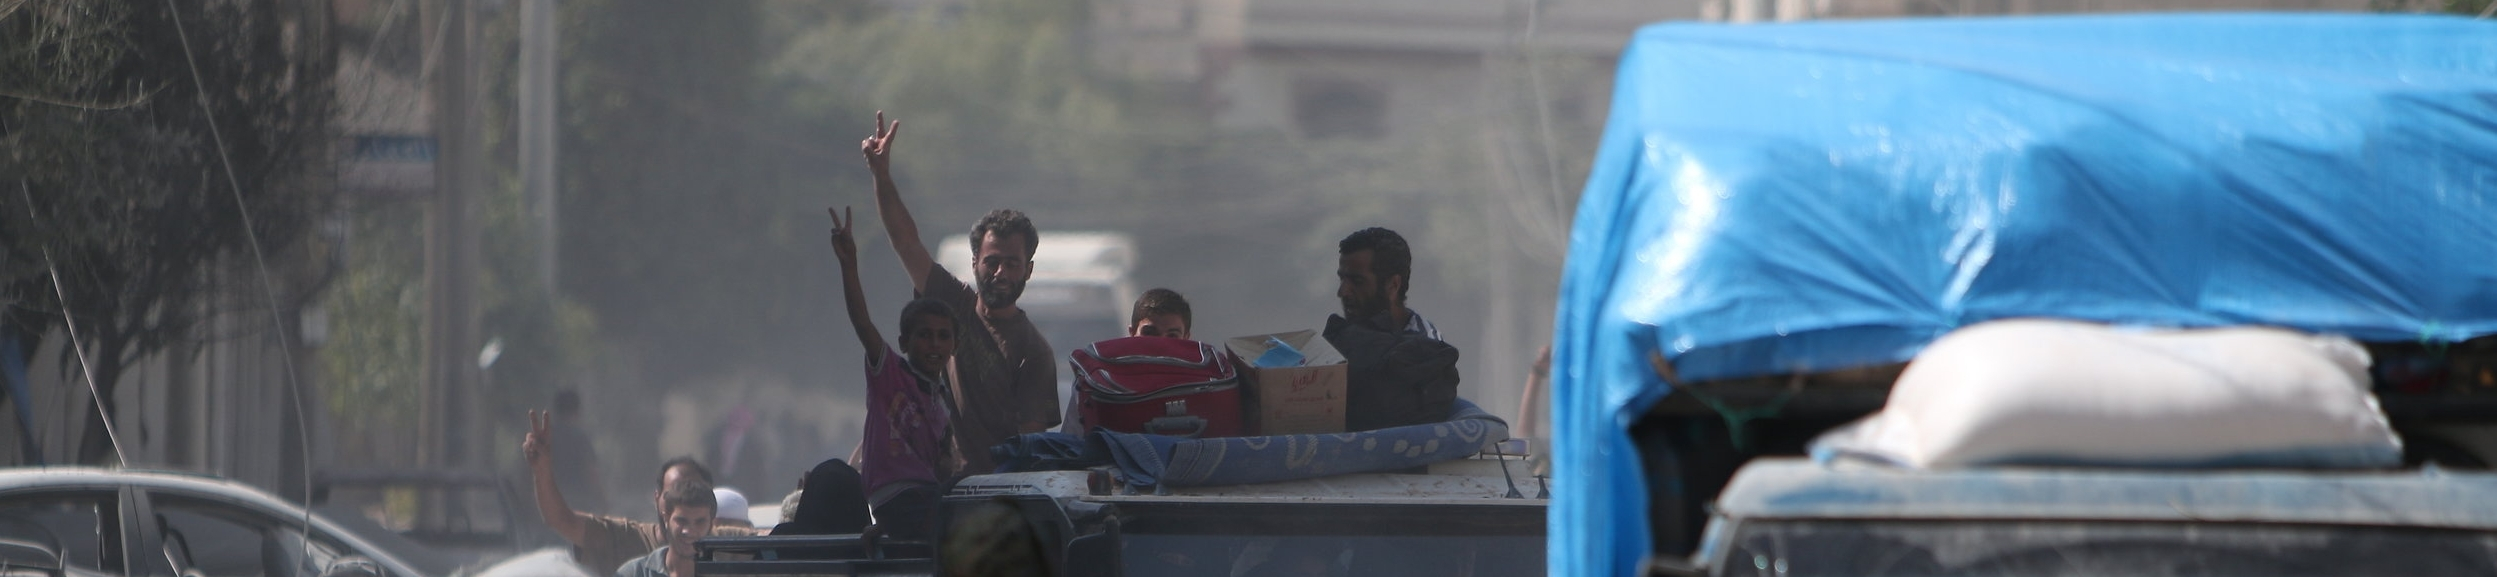 IDP's run from Daesh and wave to QSD fighter in Raqqa.JPG